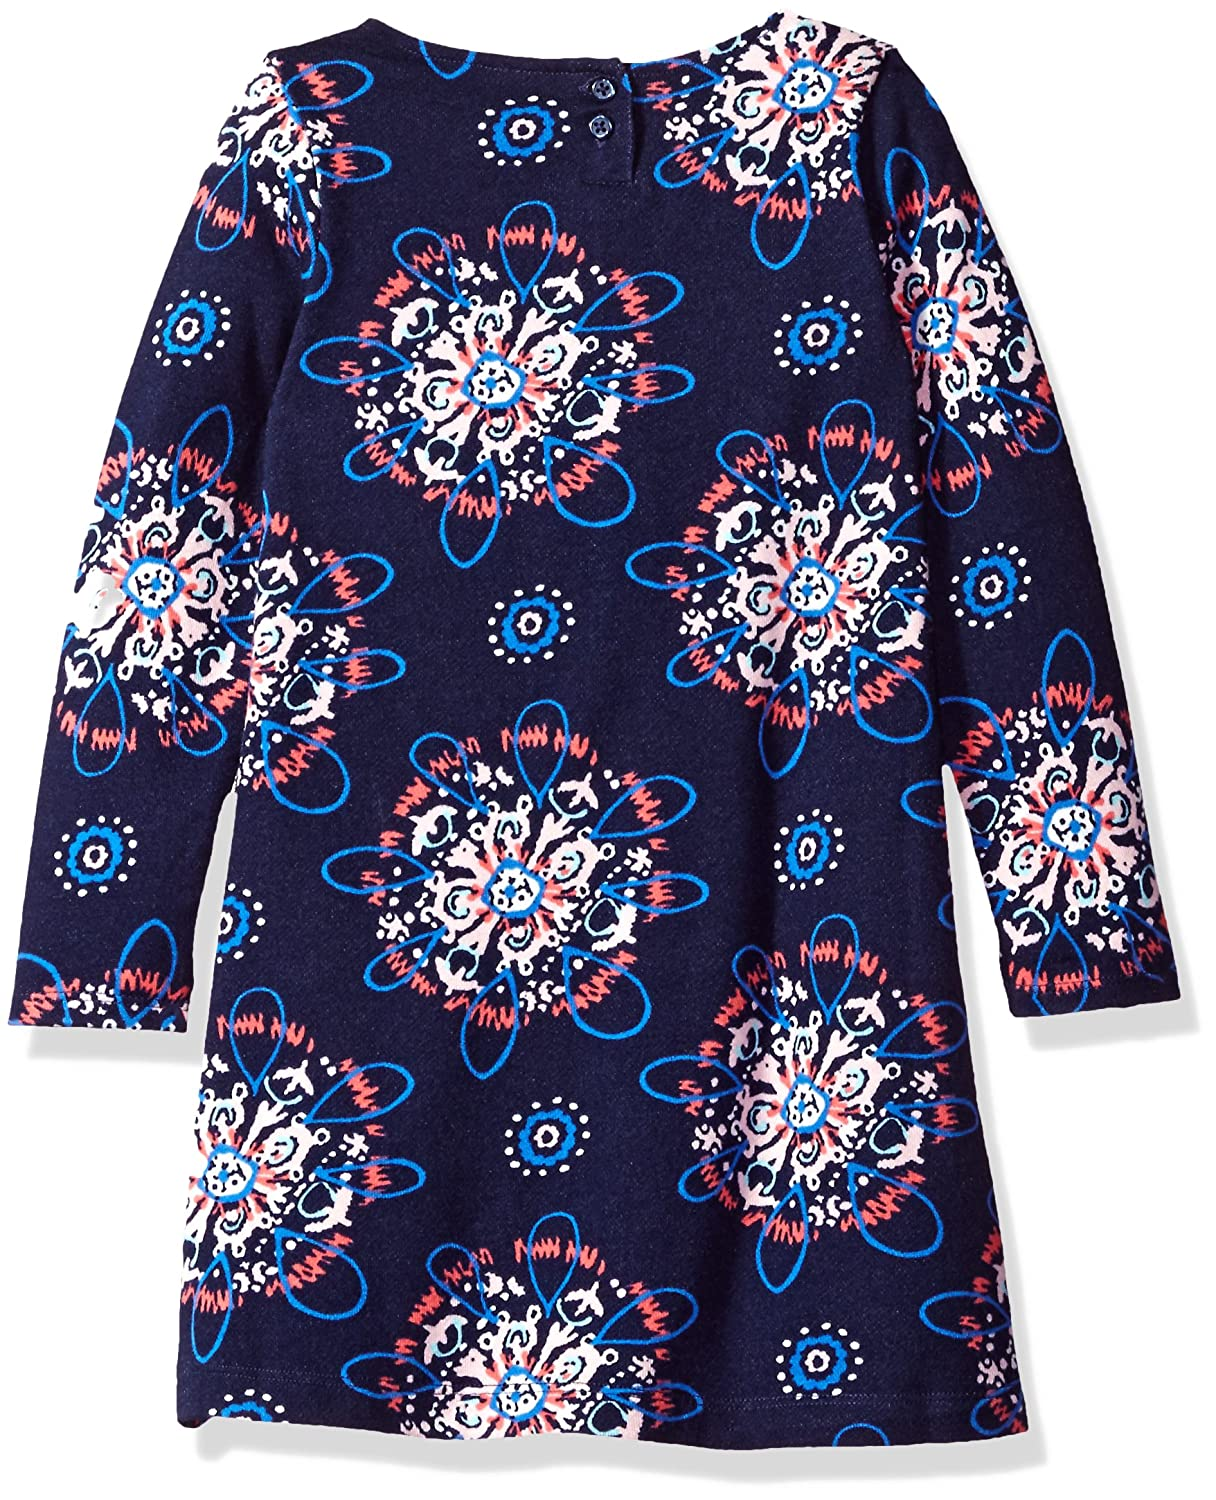 30e3ff9ba1d Amazon.com: Gymboree Girls' Toddler Navy Exploded Stars Shift Dress:  Clothing